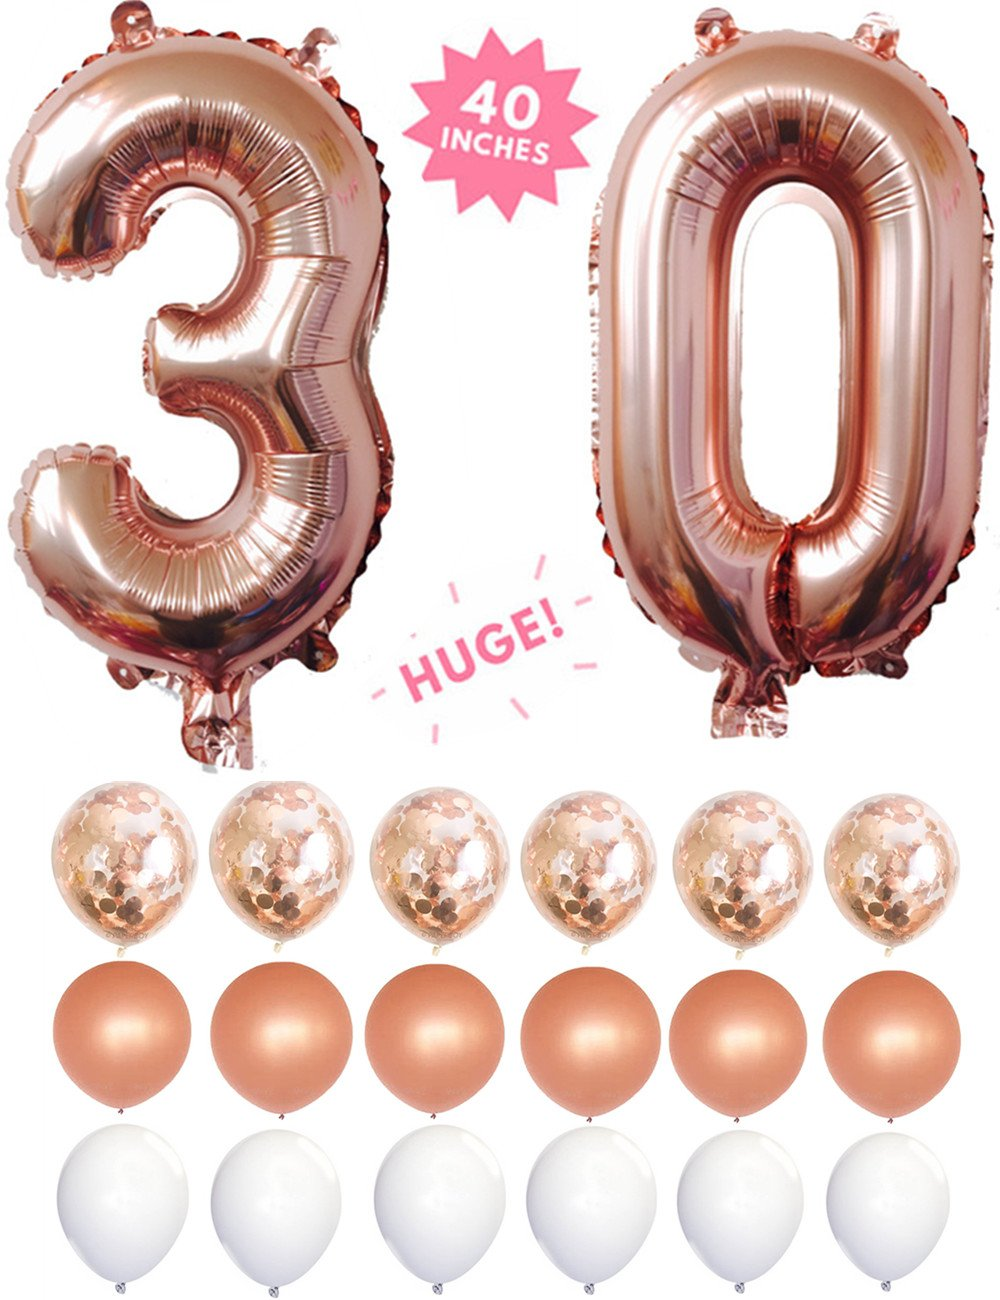 30th Birthday Decorations,30 Rose Gold 40 '' Number Balloons Foil Mylar With Rose Gold Confetti Balloons & 12 Latex Balloons For Anniversary